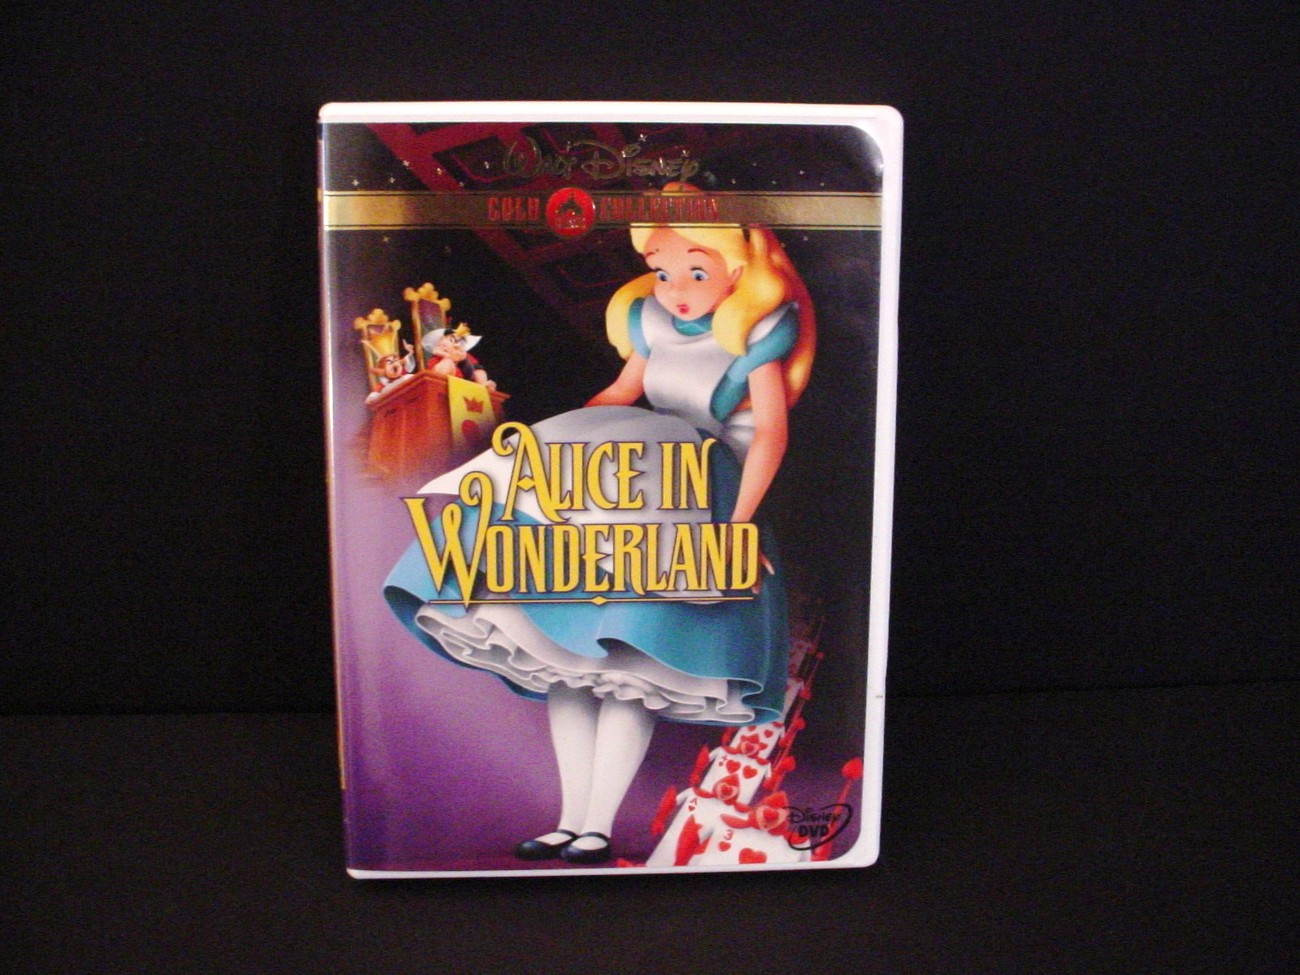 Think, Alice in wonderland adult musical comedy